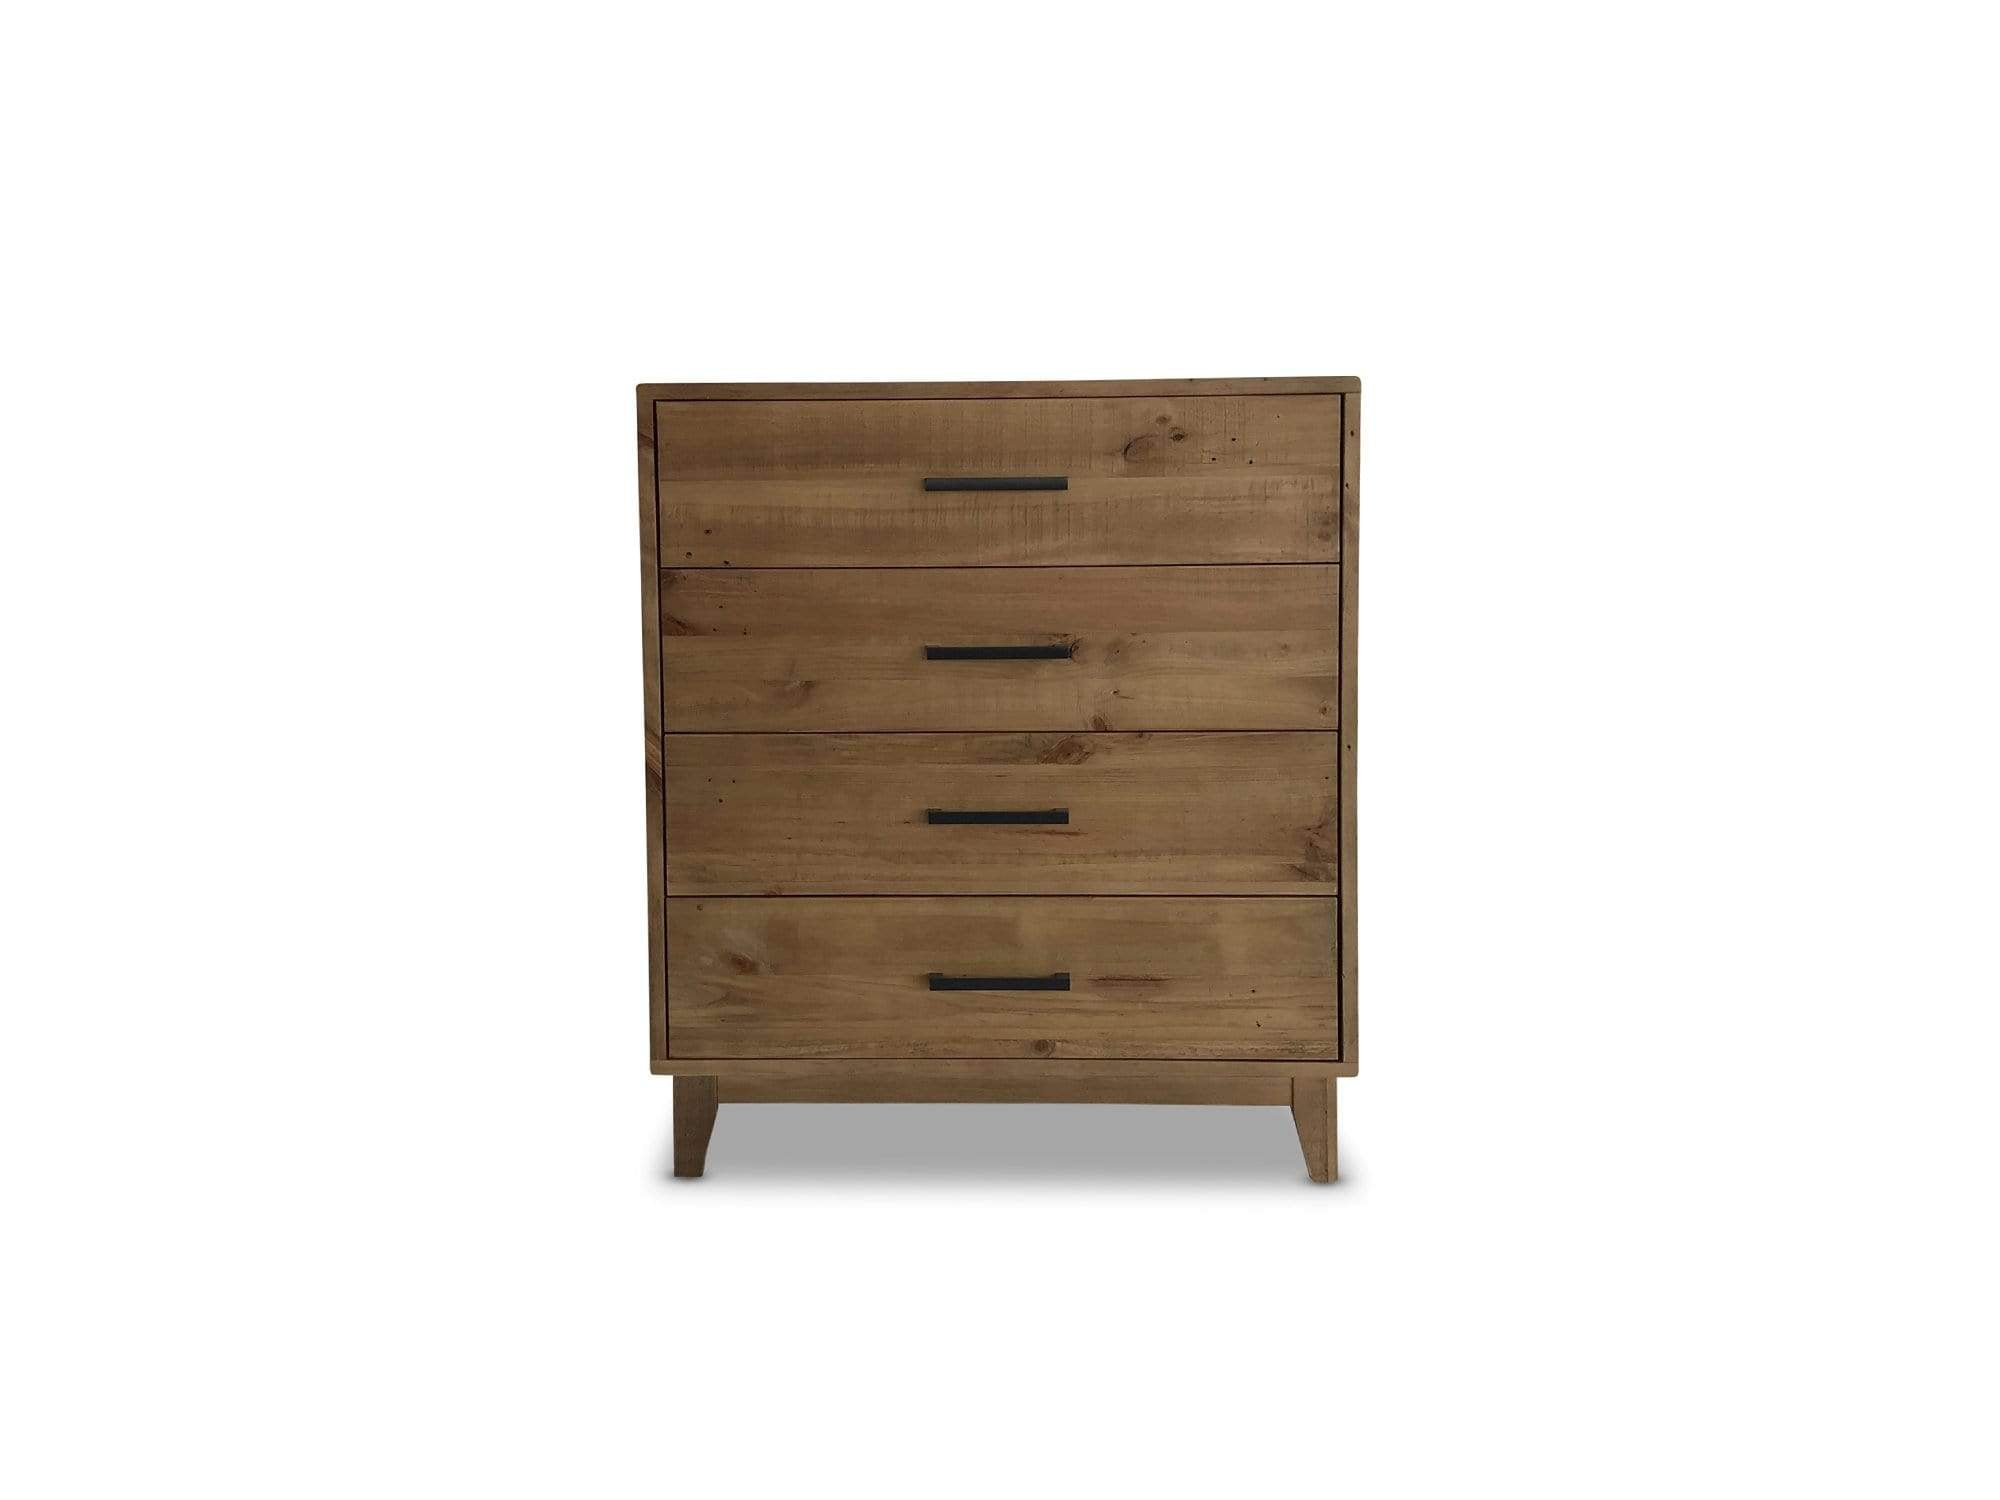 Bondi Timber Tallboy with Recycled Timber and Distressed Finish